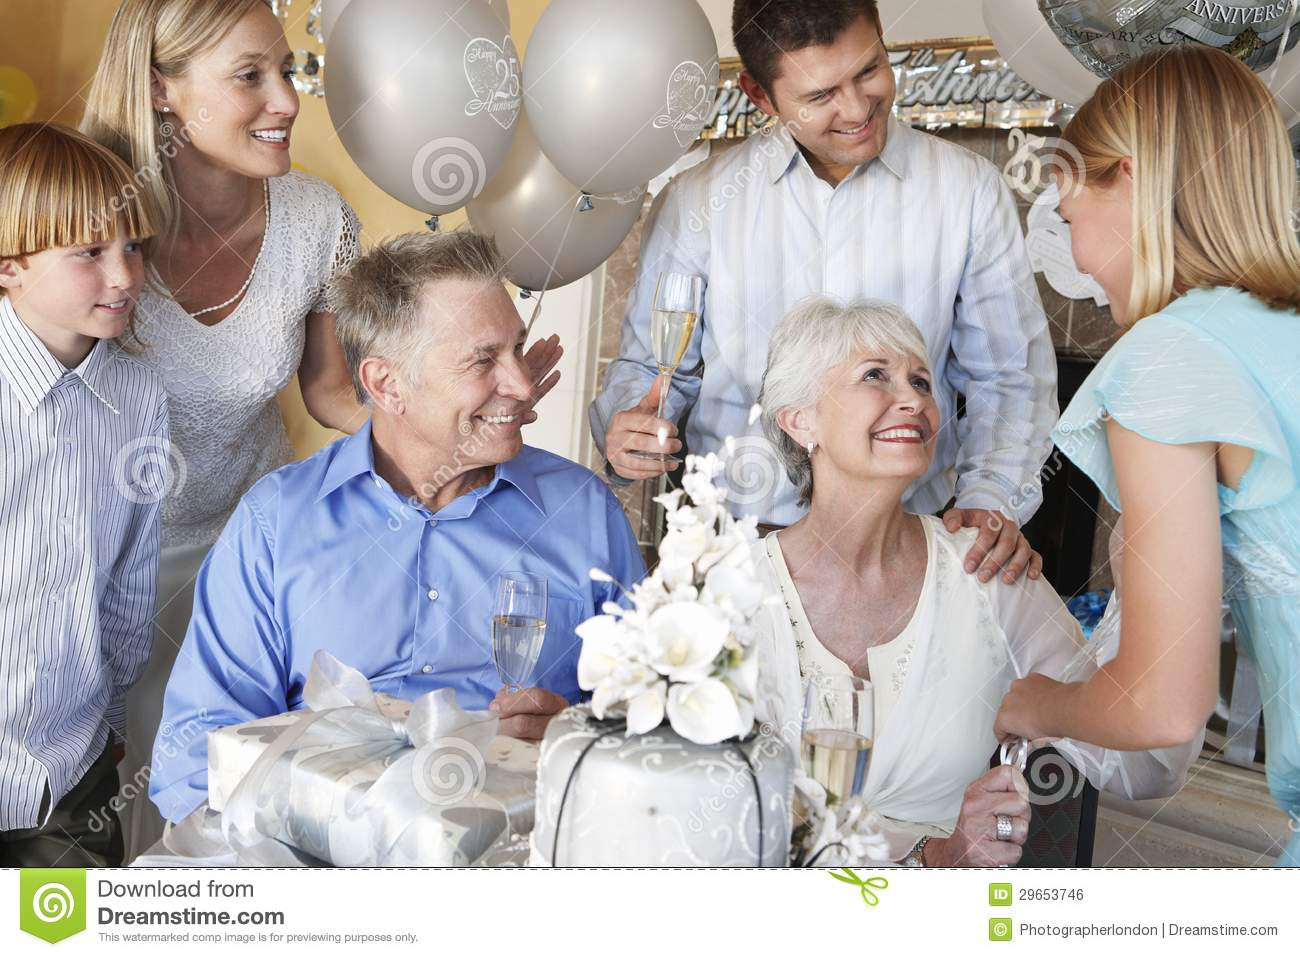 25 Anniversary Gift For Parents >> Family Celebrating 25Th Anniversary Stock Photo - Image: 29653746